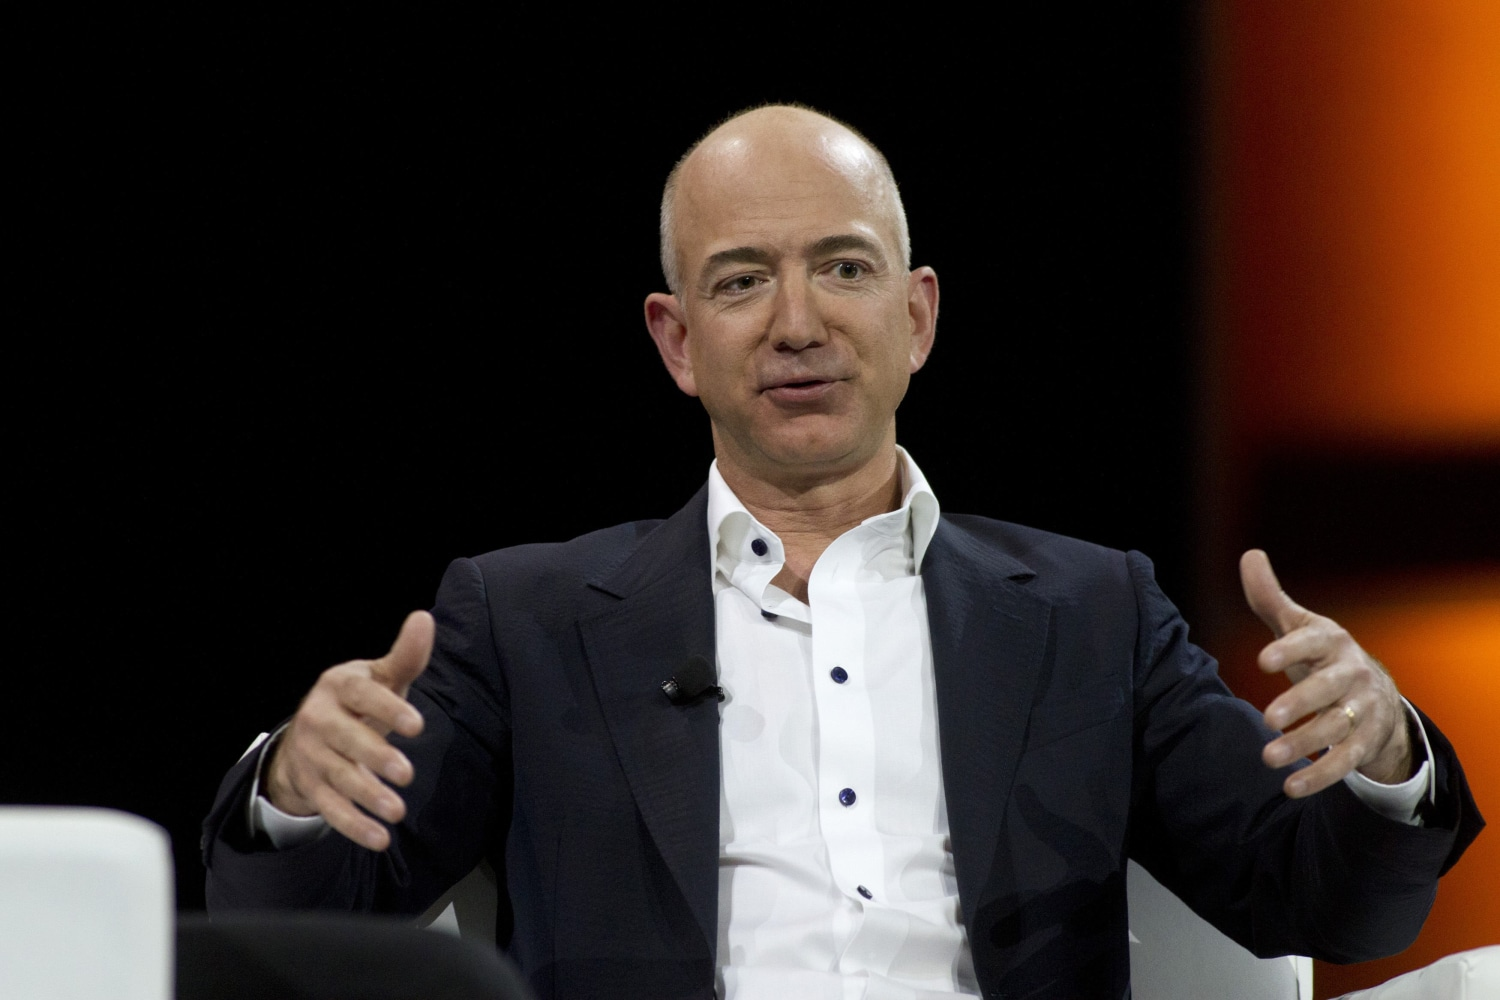 Amazon.com Chief Executive Officer Jeff Bezos speaks during a keynote ...